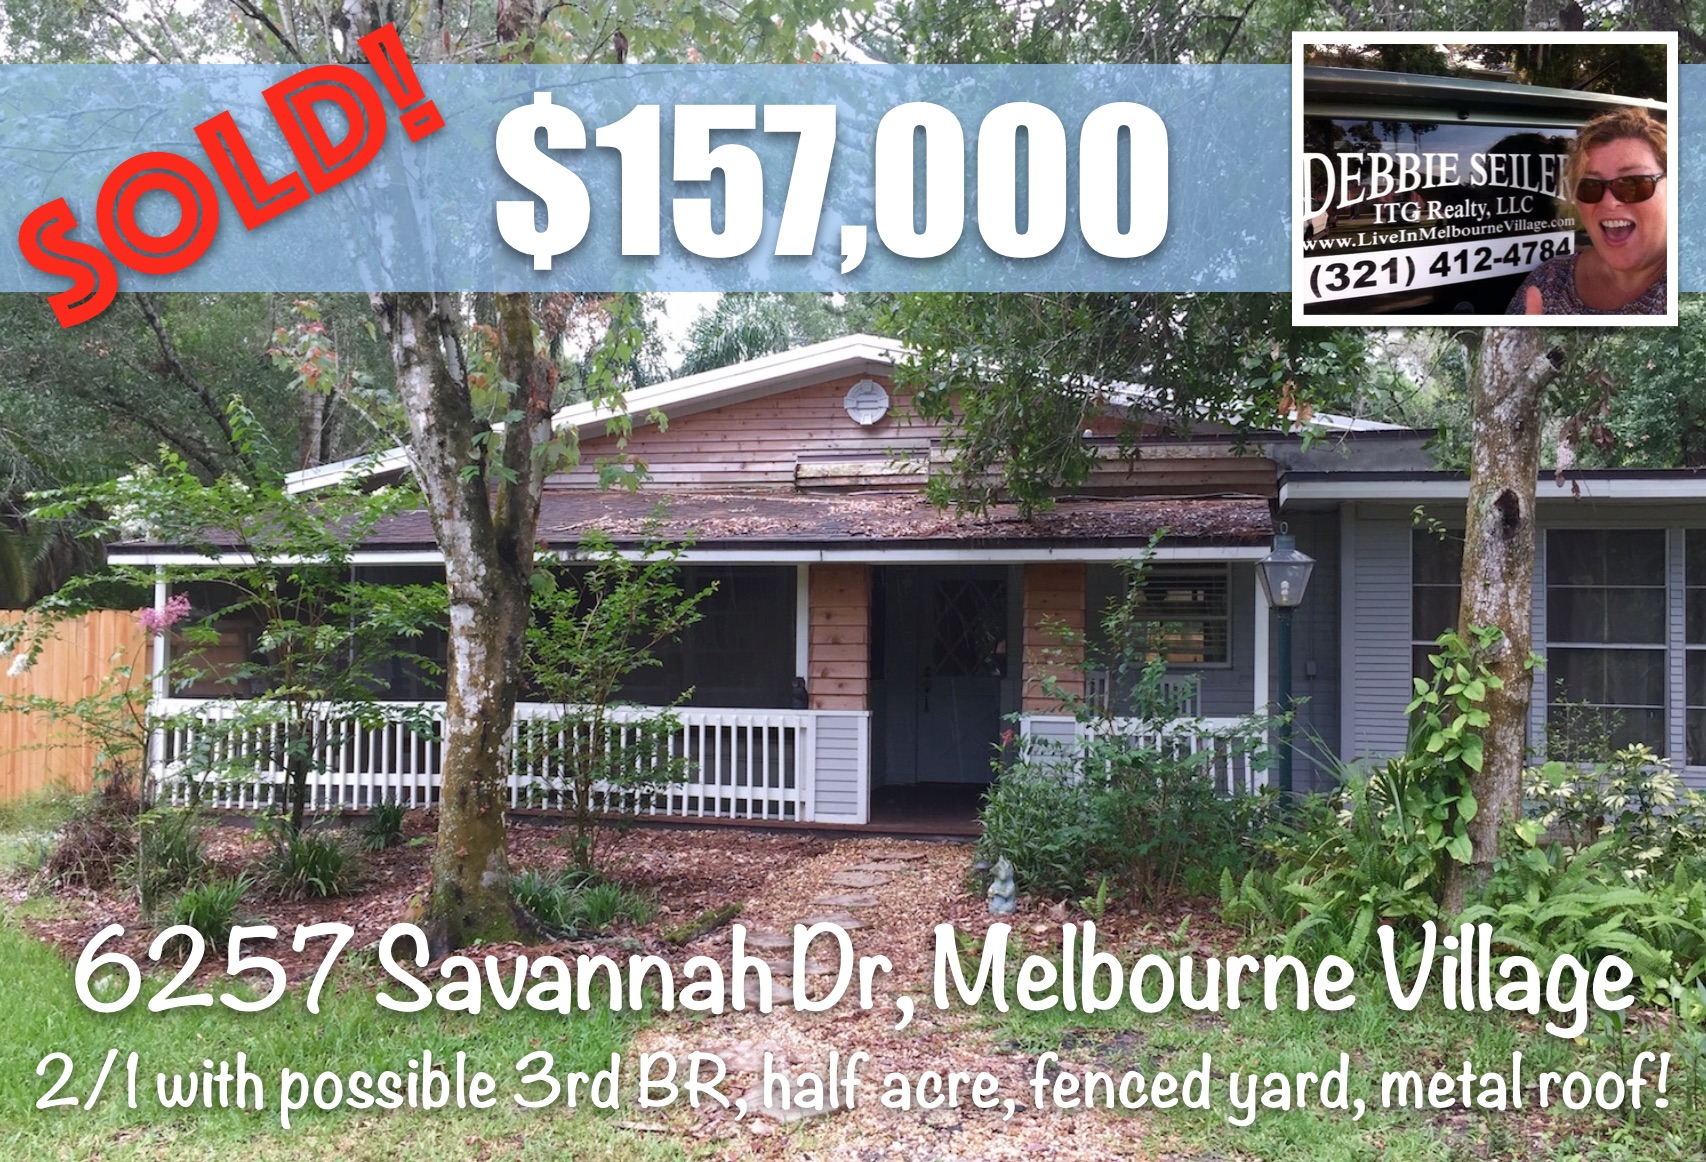 6257 Savannah Sold Melbourne Village